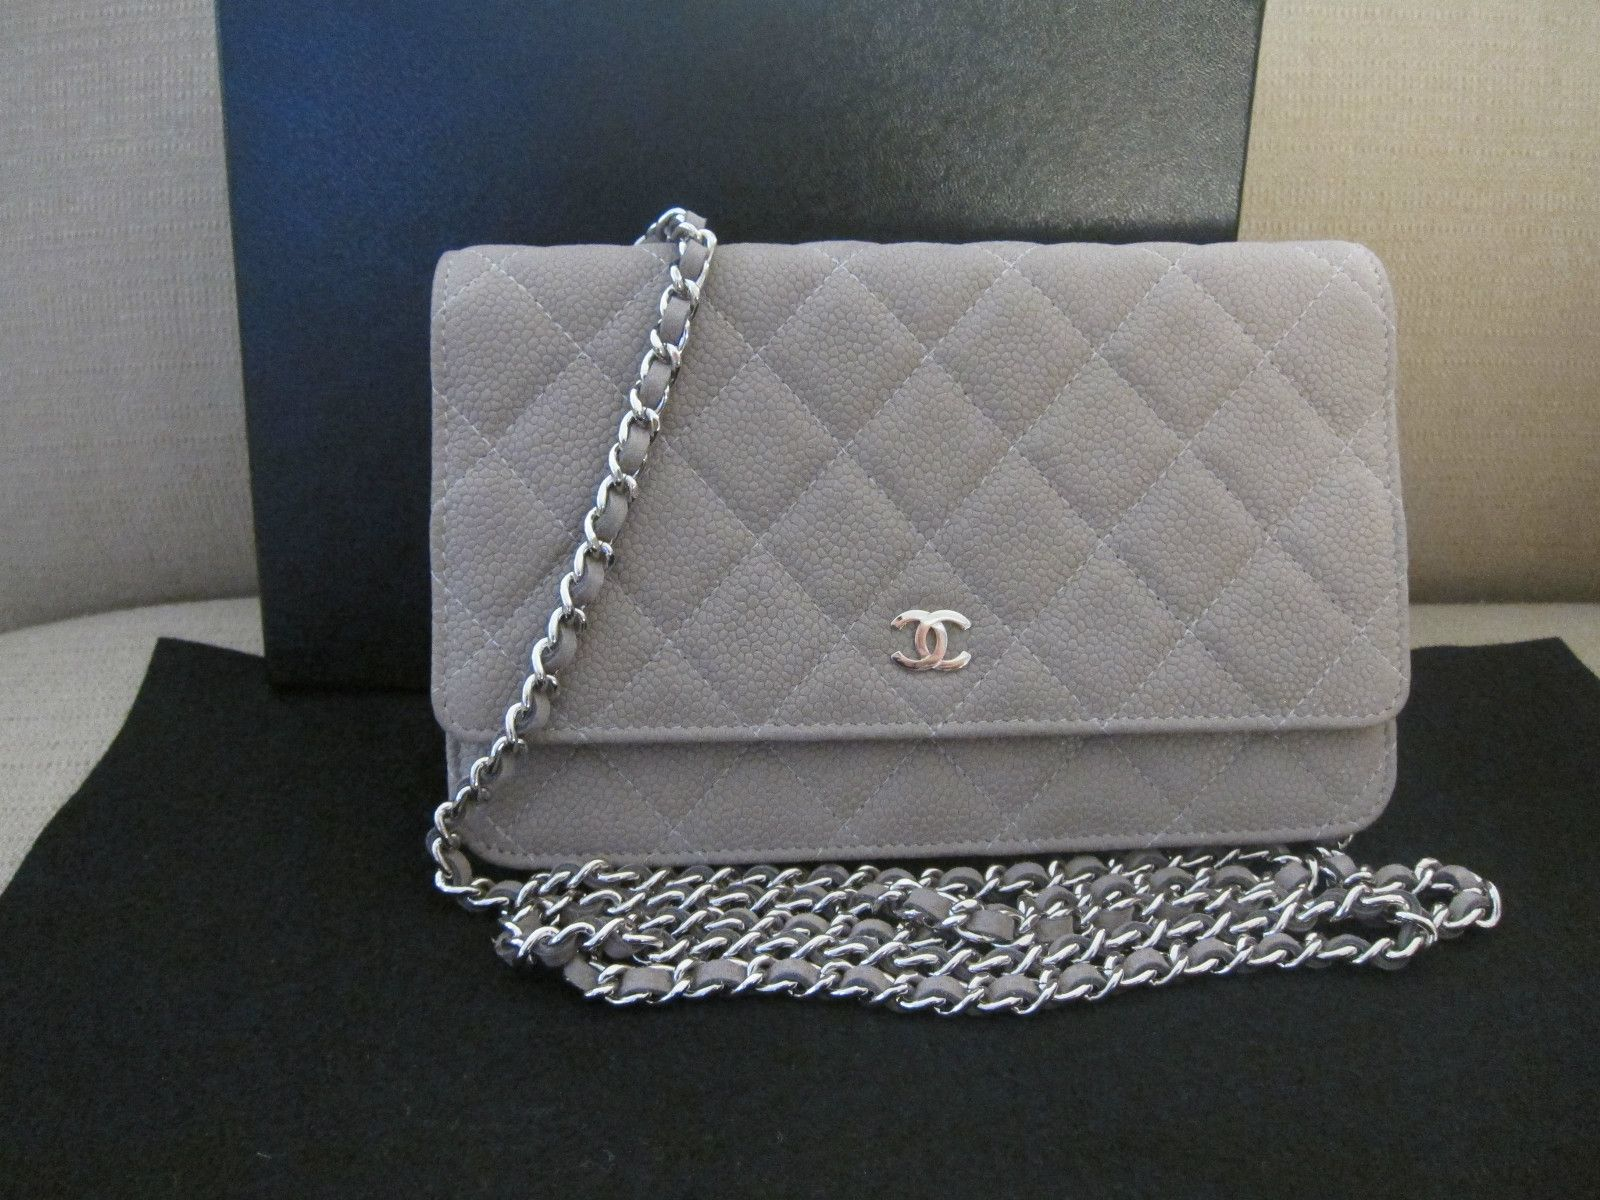 c386bbffcea1e1 Check out Jiye's pretty Chanel Wallet on Chain Grey Suede Caviar Leather  WOC Bag - for sale on eBay